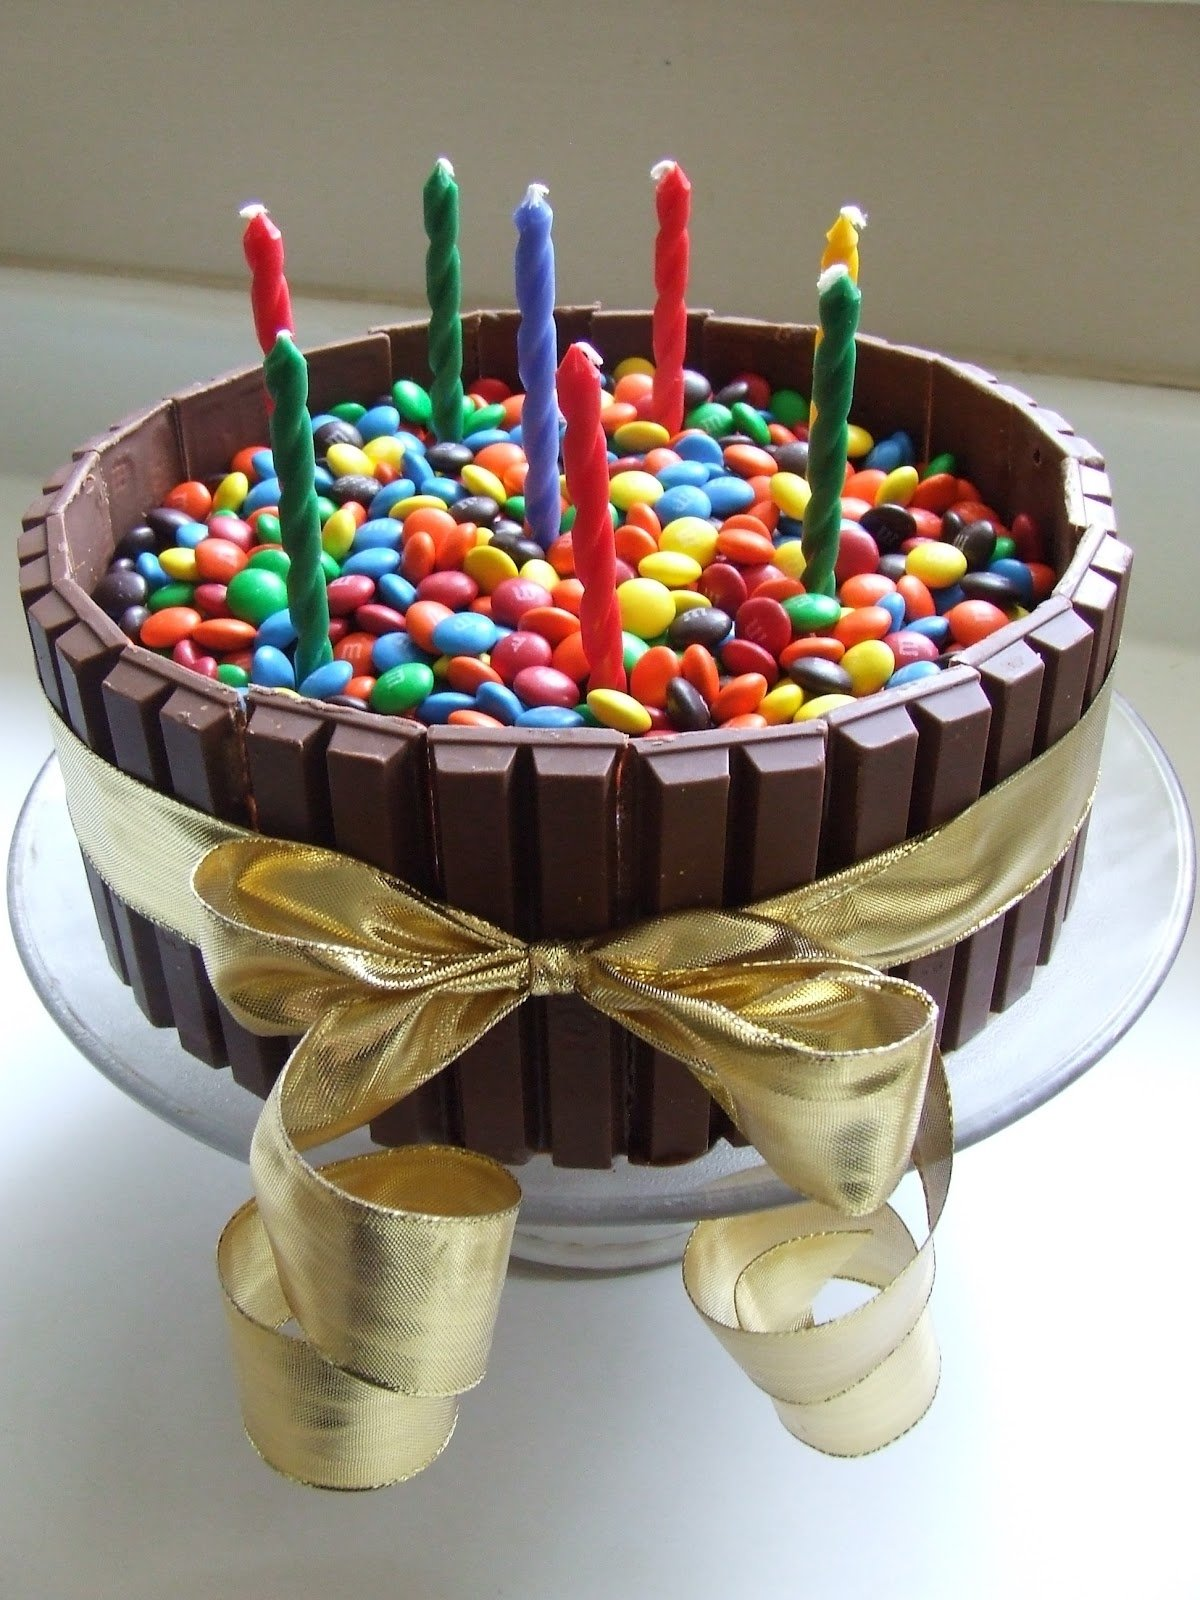 10 Lovely Birthday Ideas For 8 Year Old Boy cake ideas for 15 year old boy 14 8 year old birthday cakes for boys 2 2020